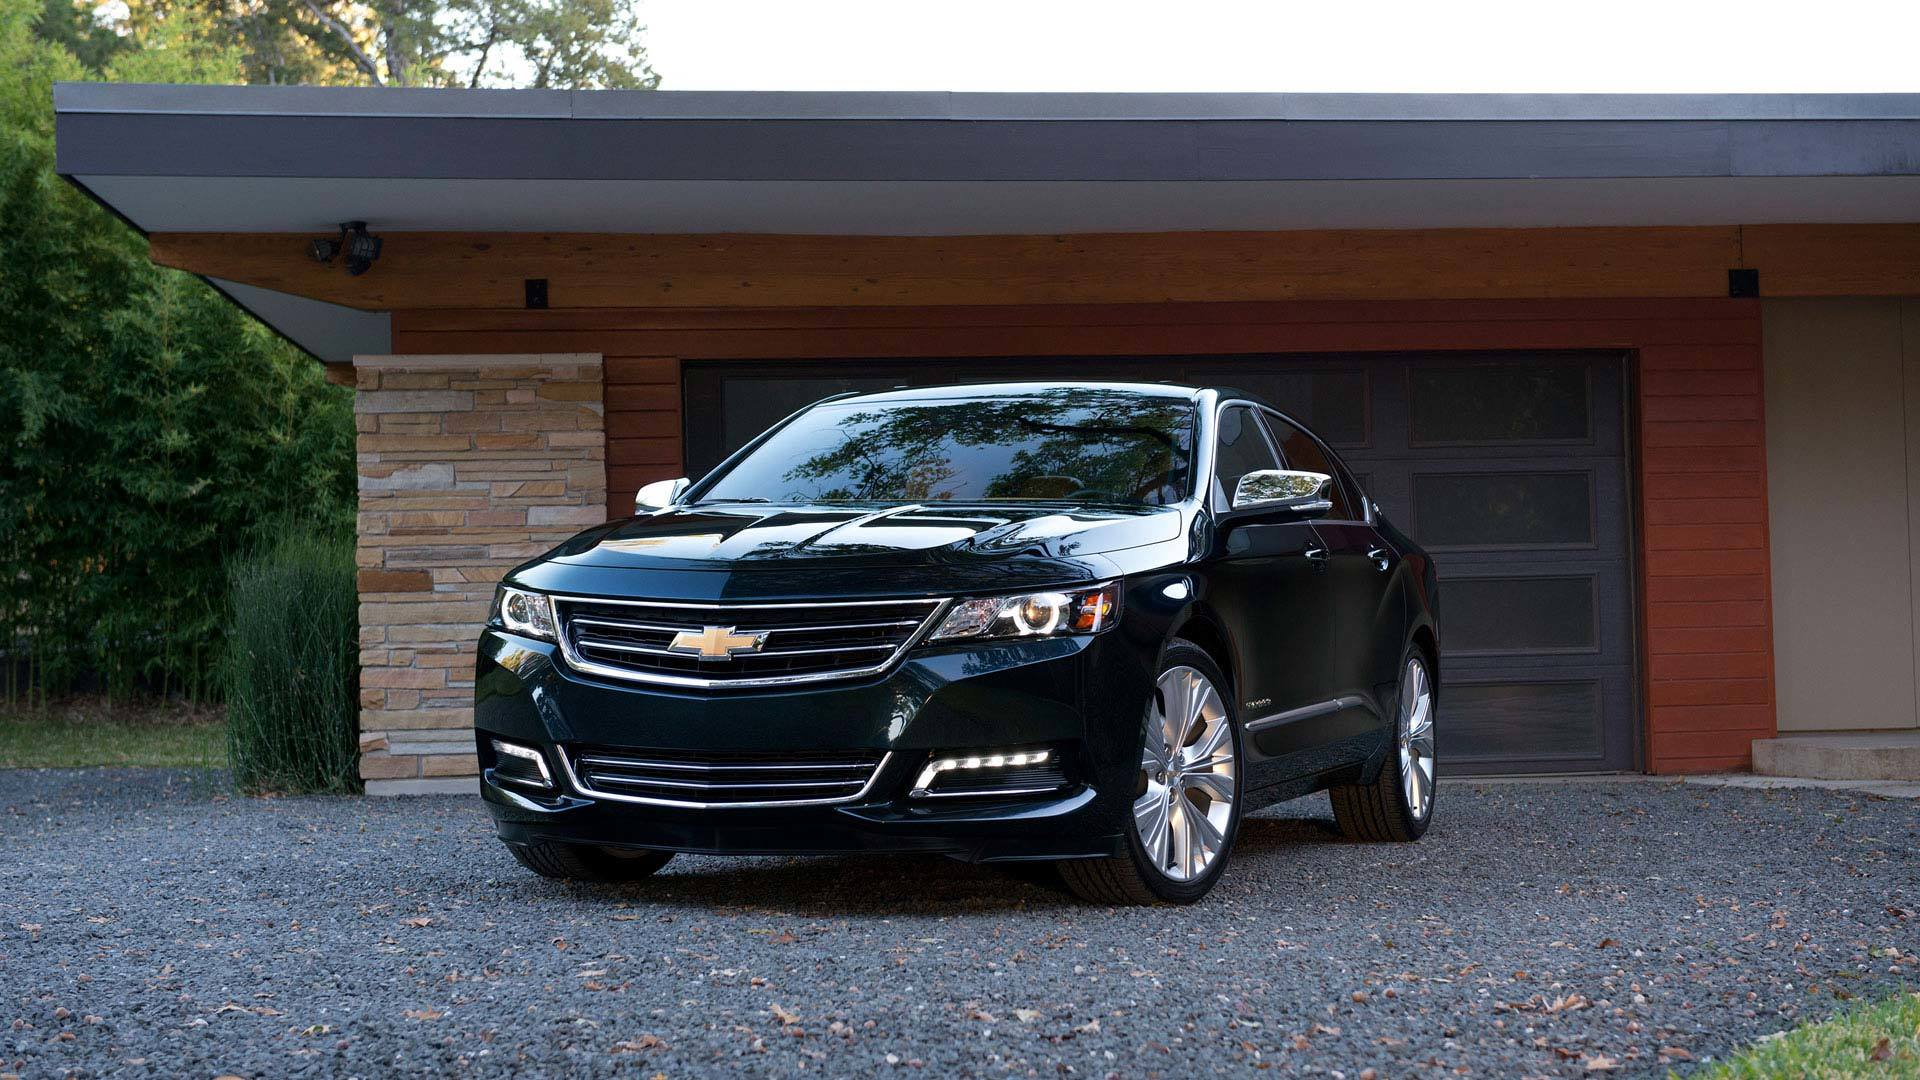 2015 Chevy Impala Accessories Near Tysons Corner VA Pohanka